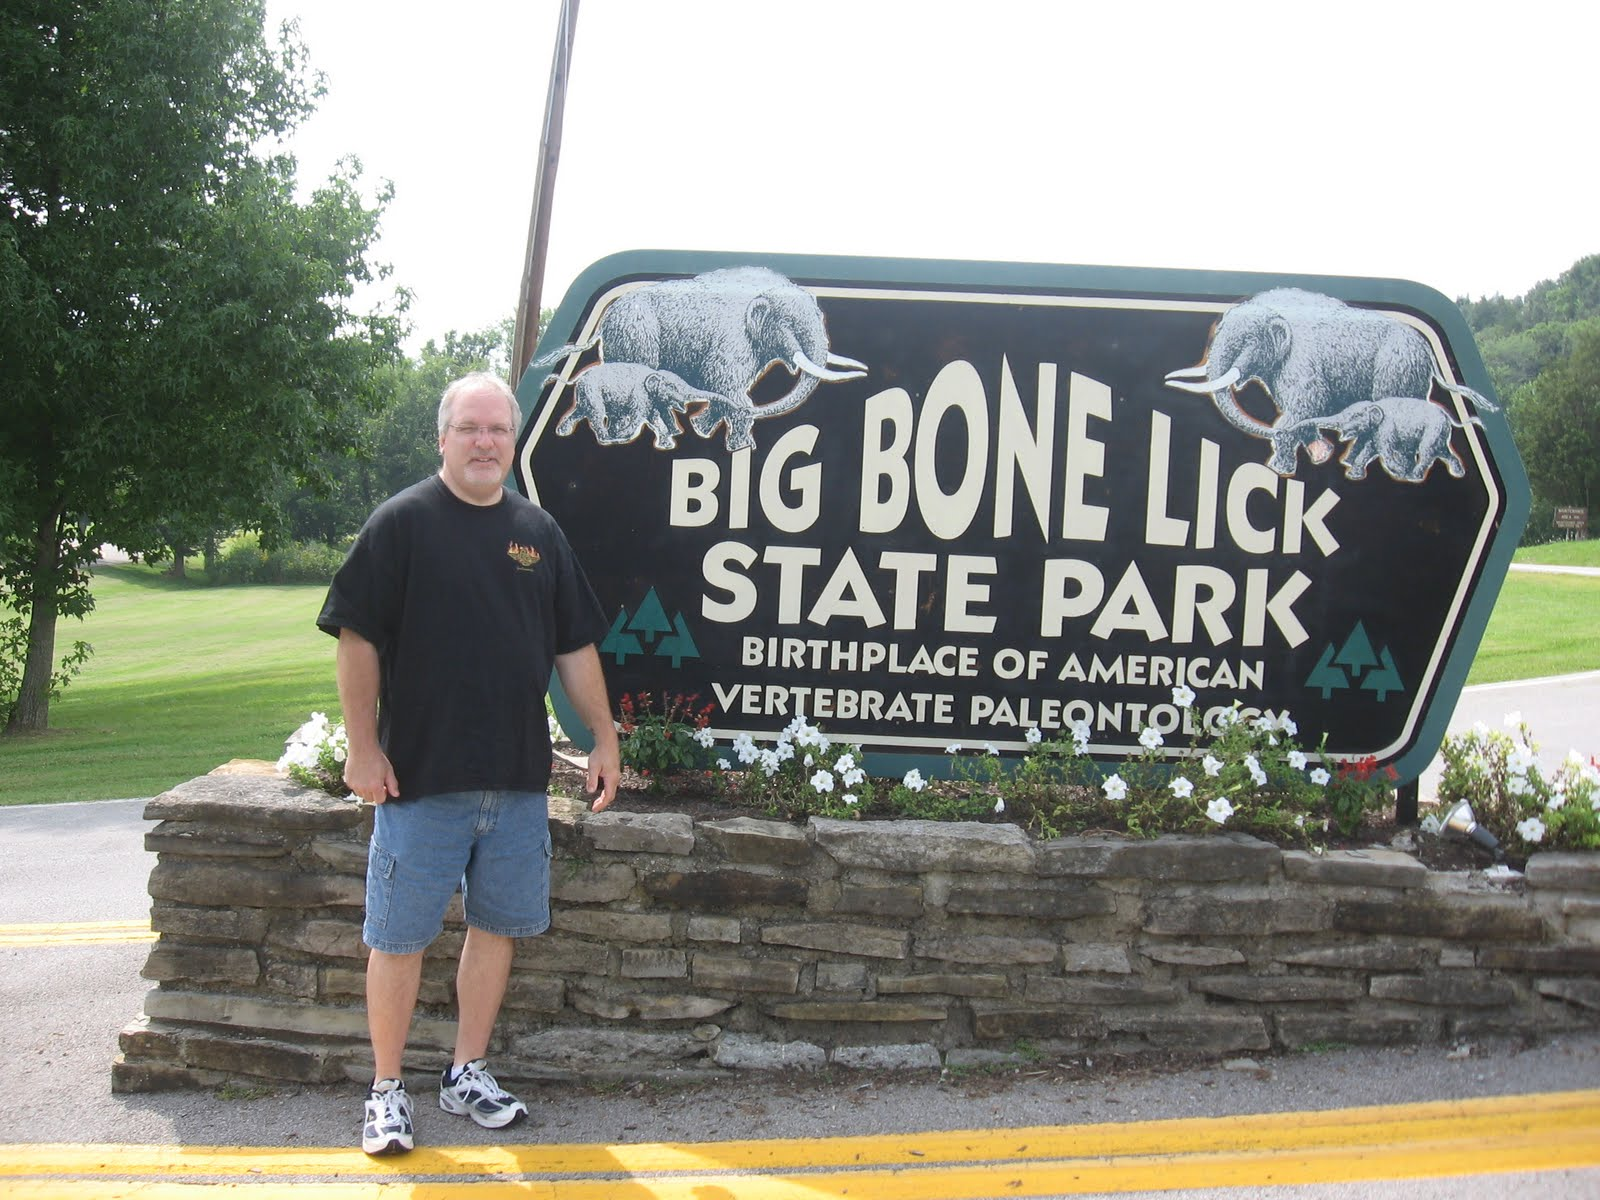 Found bone lick state park not simple